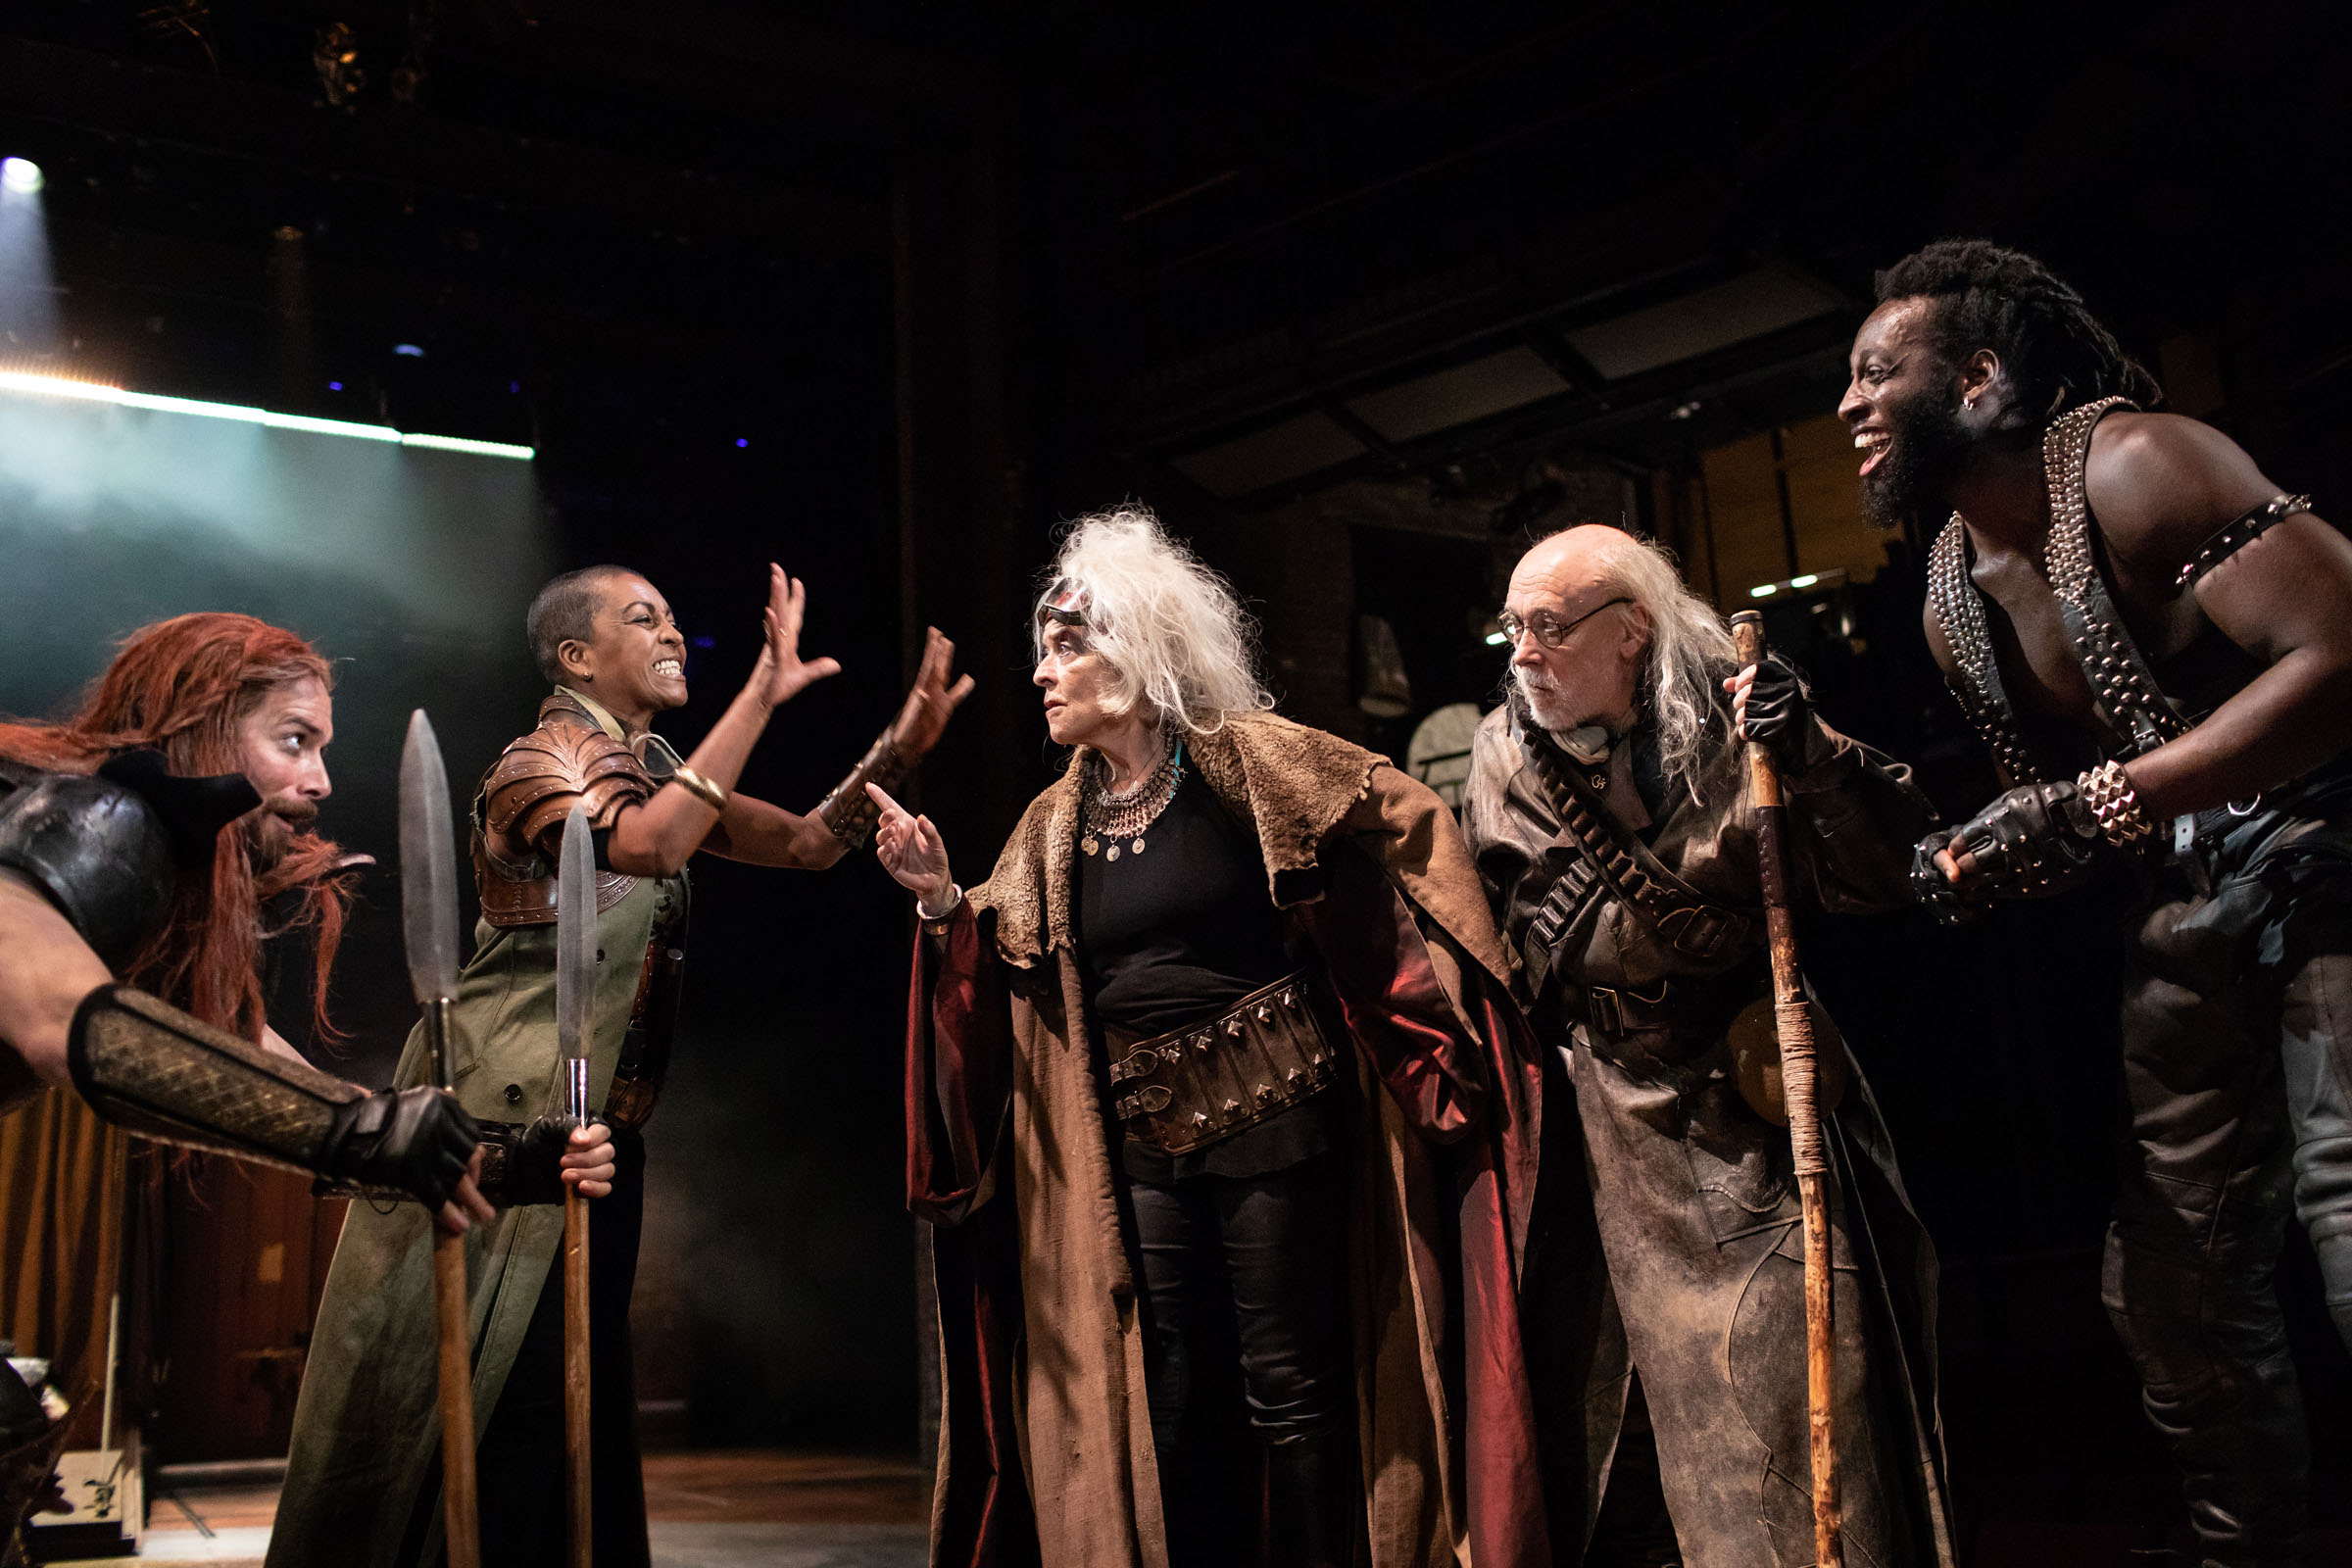 Andrew Langtree as Menelaus, Adjoa Andoh as Ulysses, Suzanne Bertish as Agamemnon, Jim Hooper as Nestor and Theo Ogundipe as Ajax